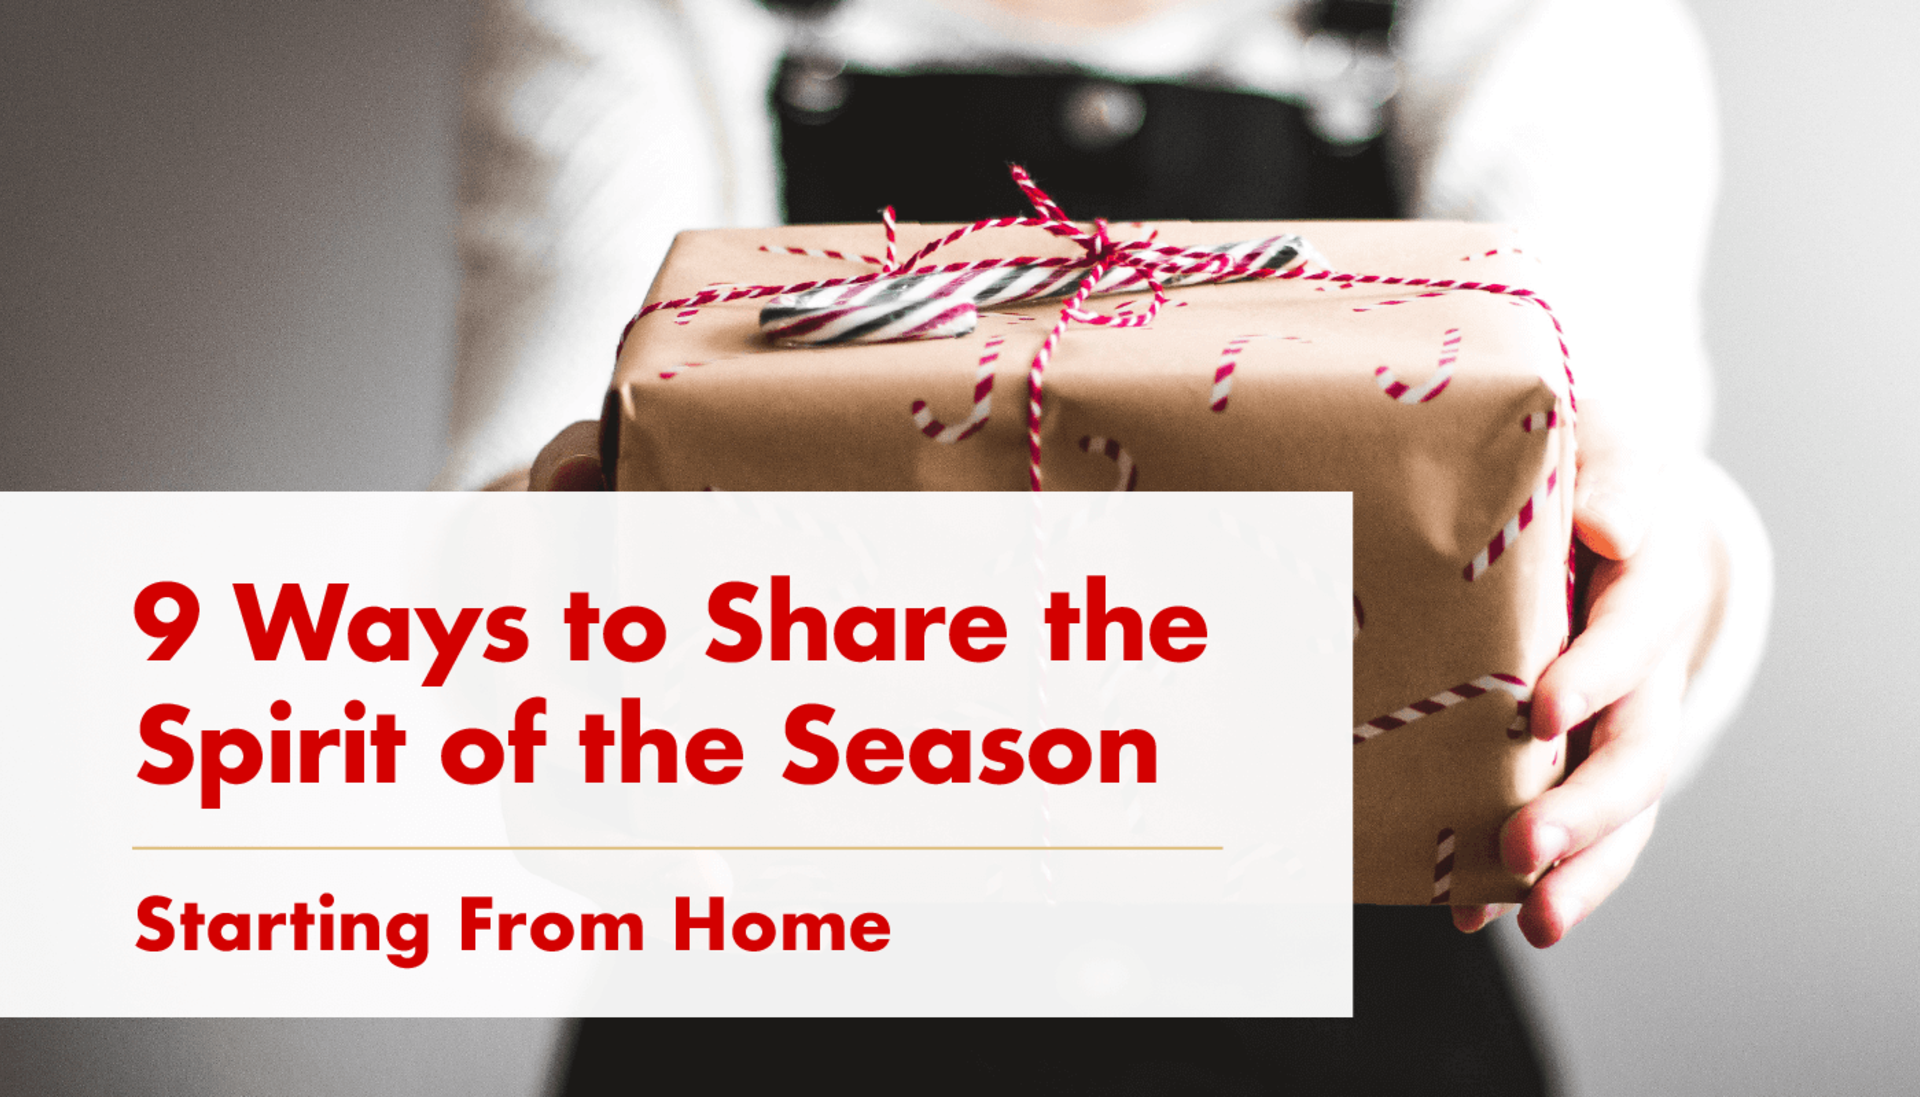 Share the Spirit of the Holidays